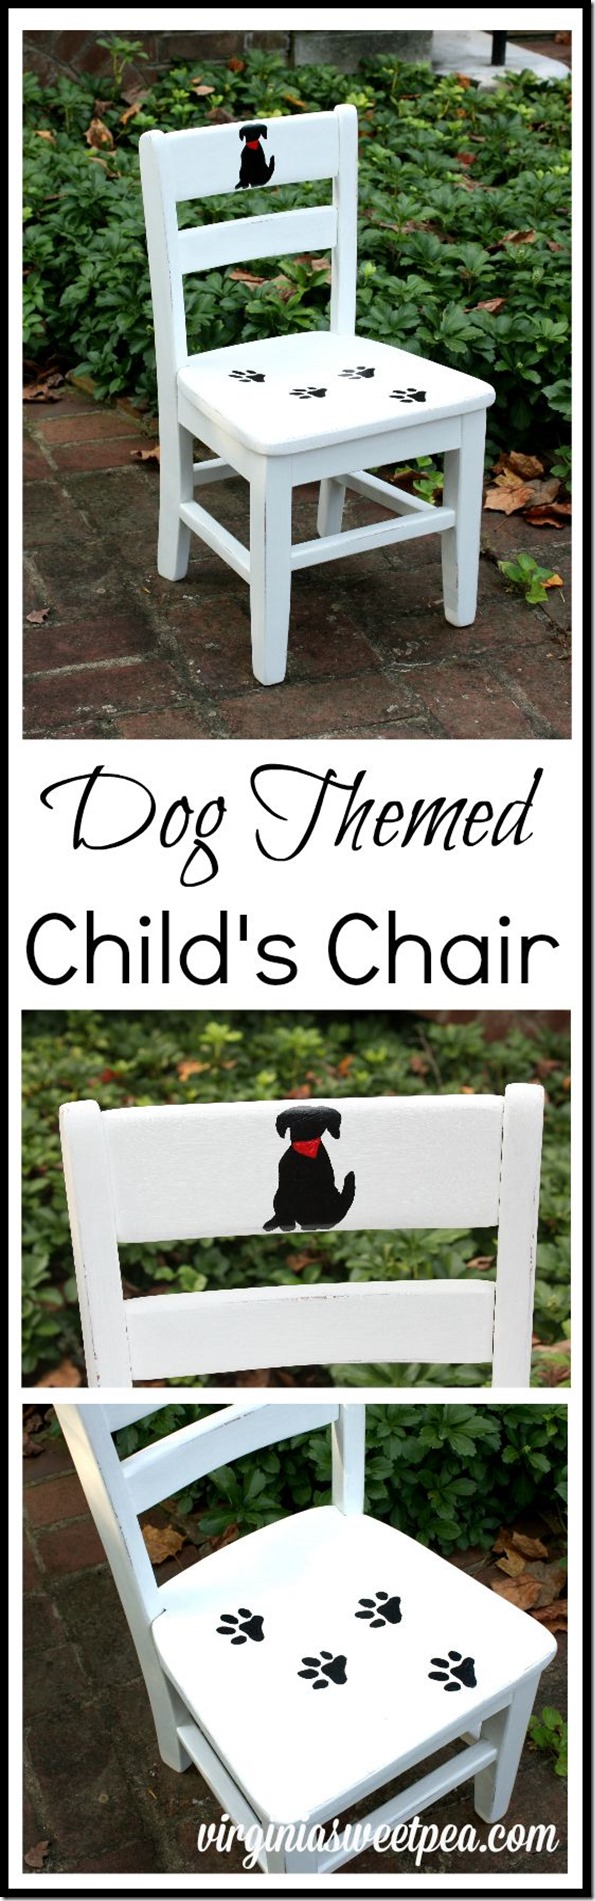 This child's chair painted with a dog theme is charming! virginiasweetpea.com